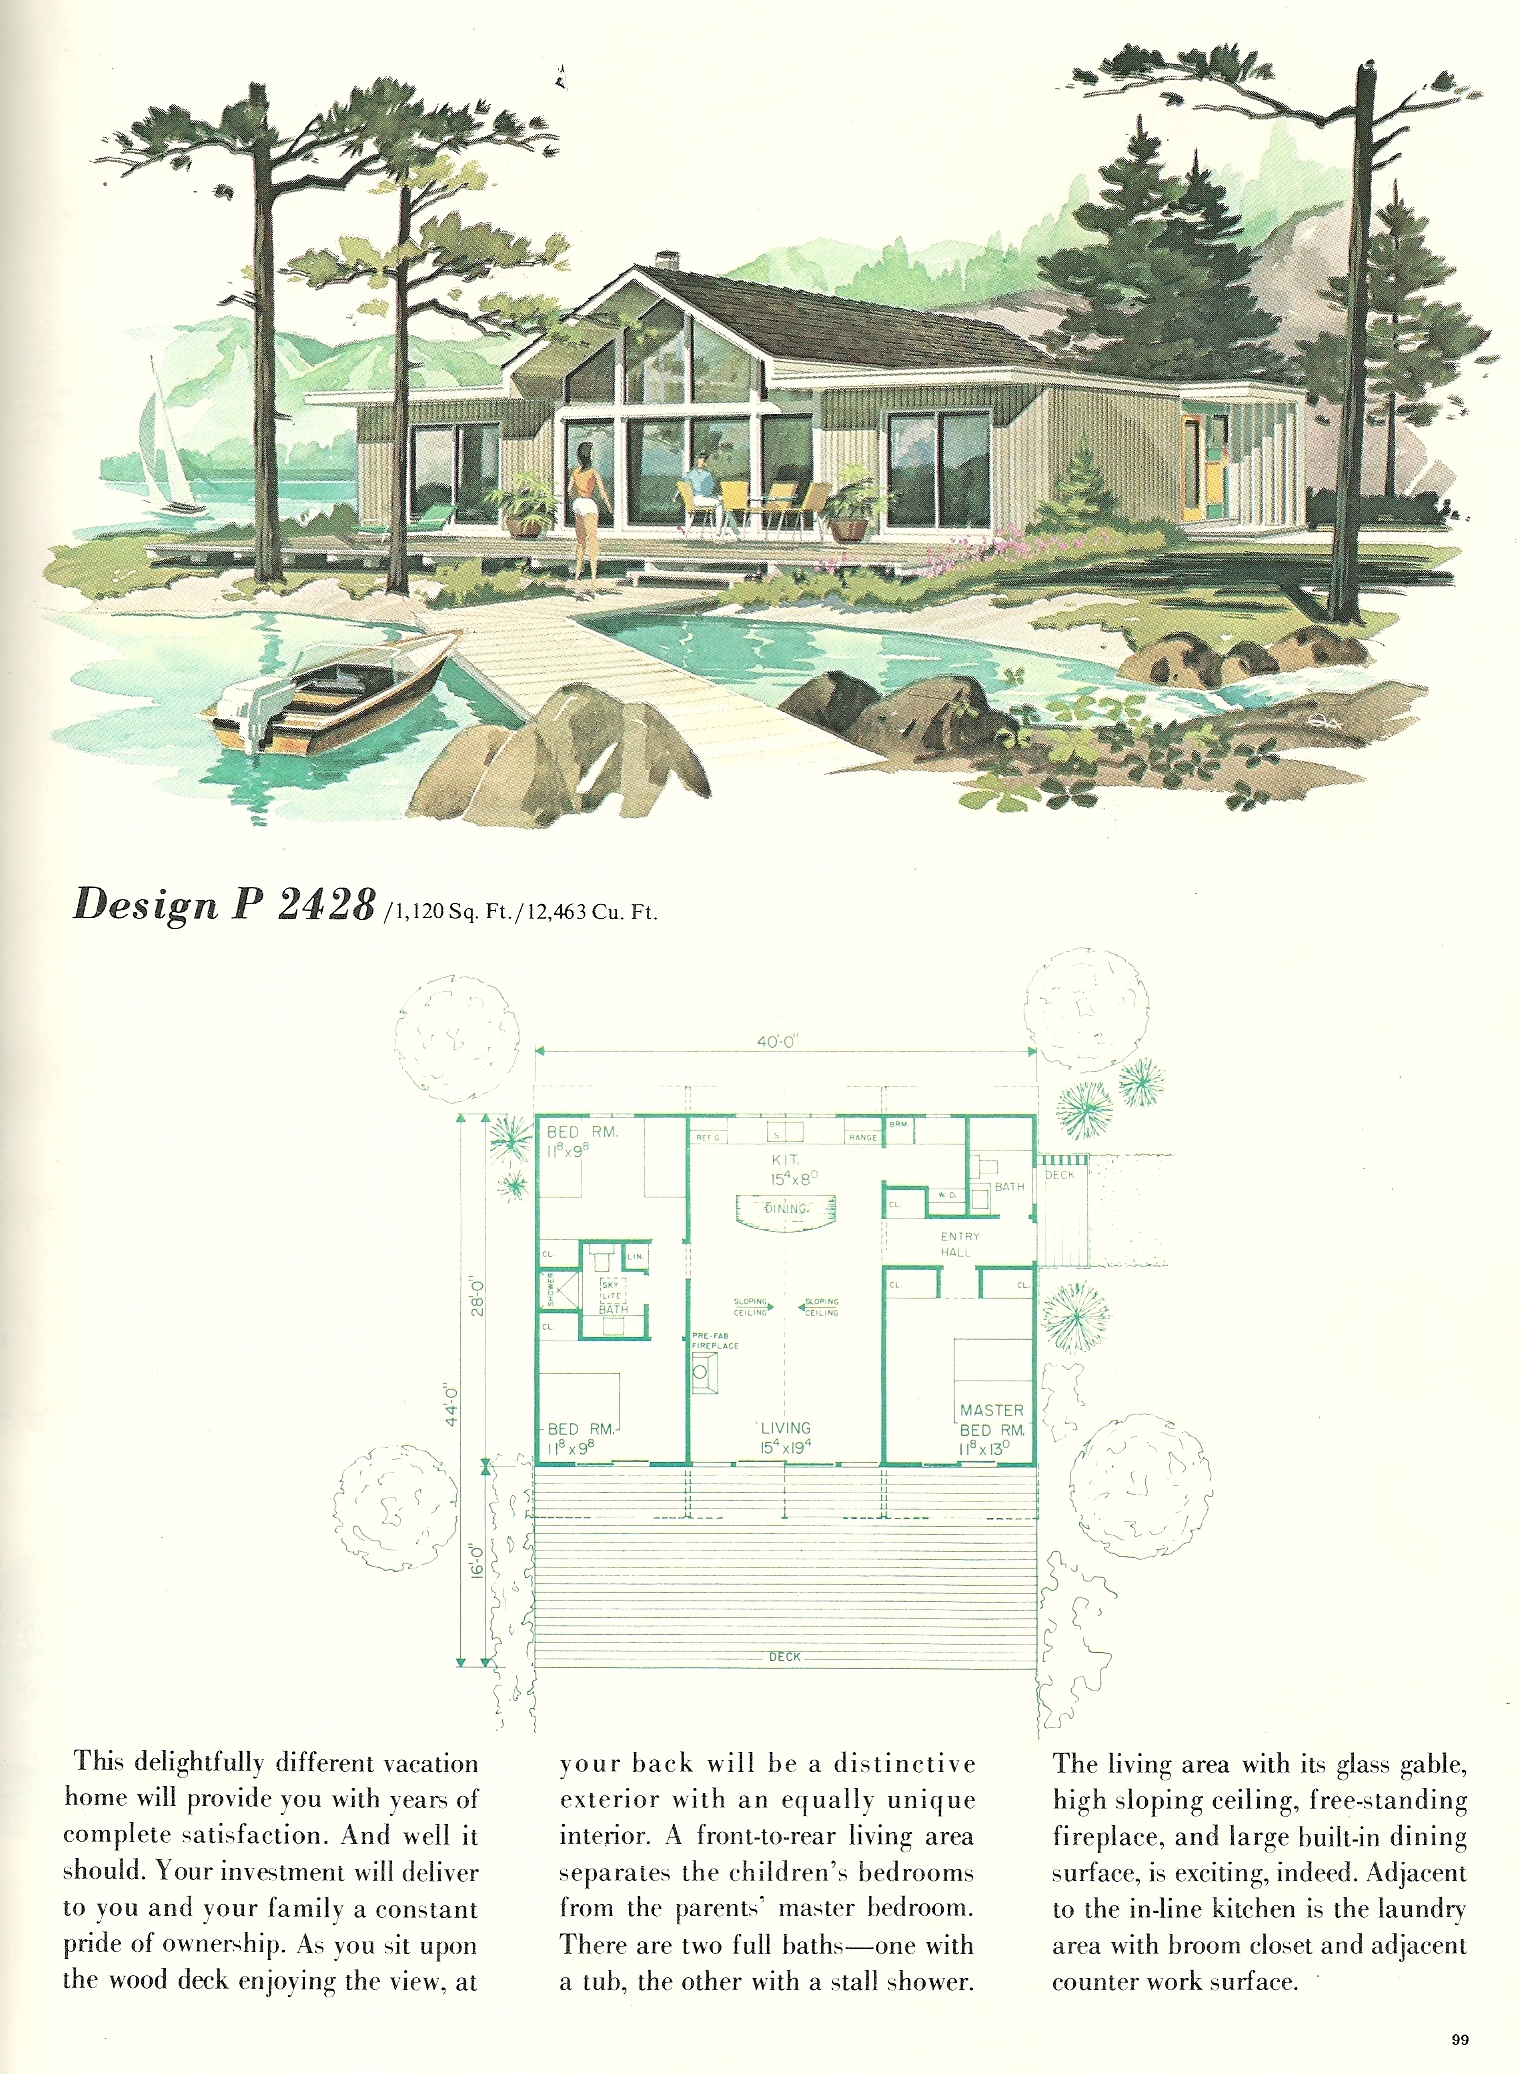 Vintage Vacation Home Plans 2428 Antique Alter Ego